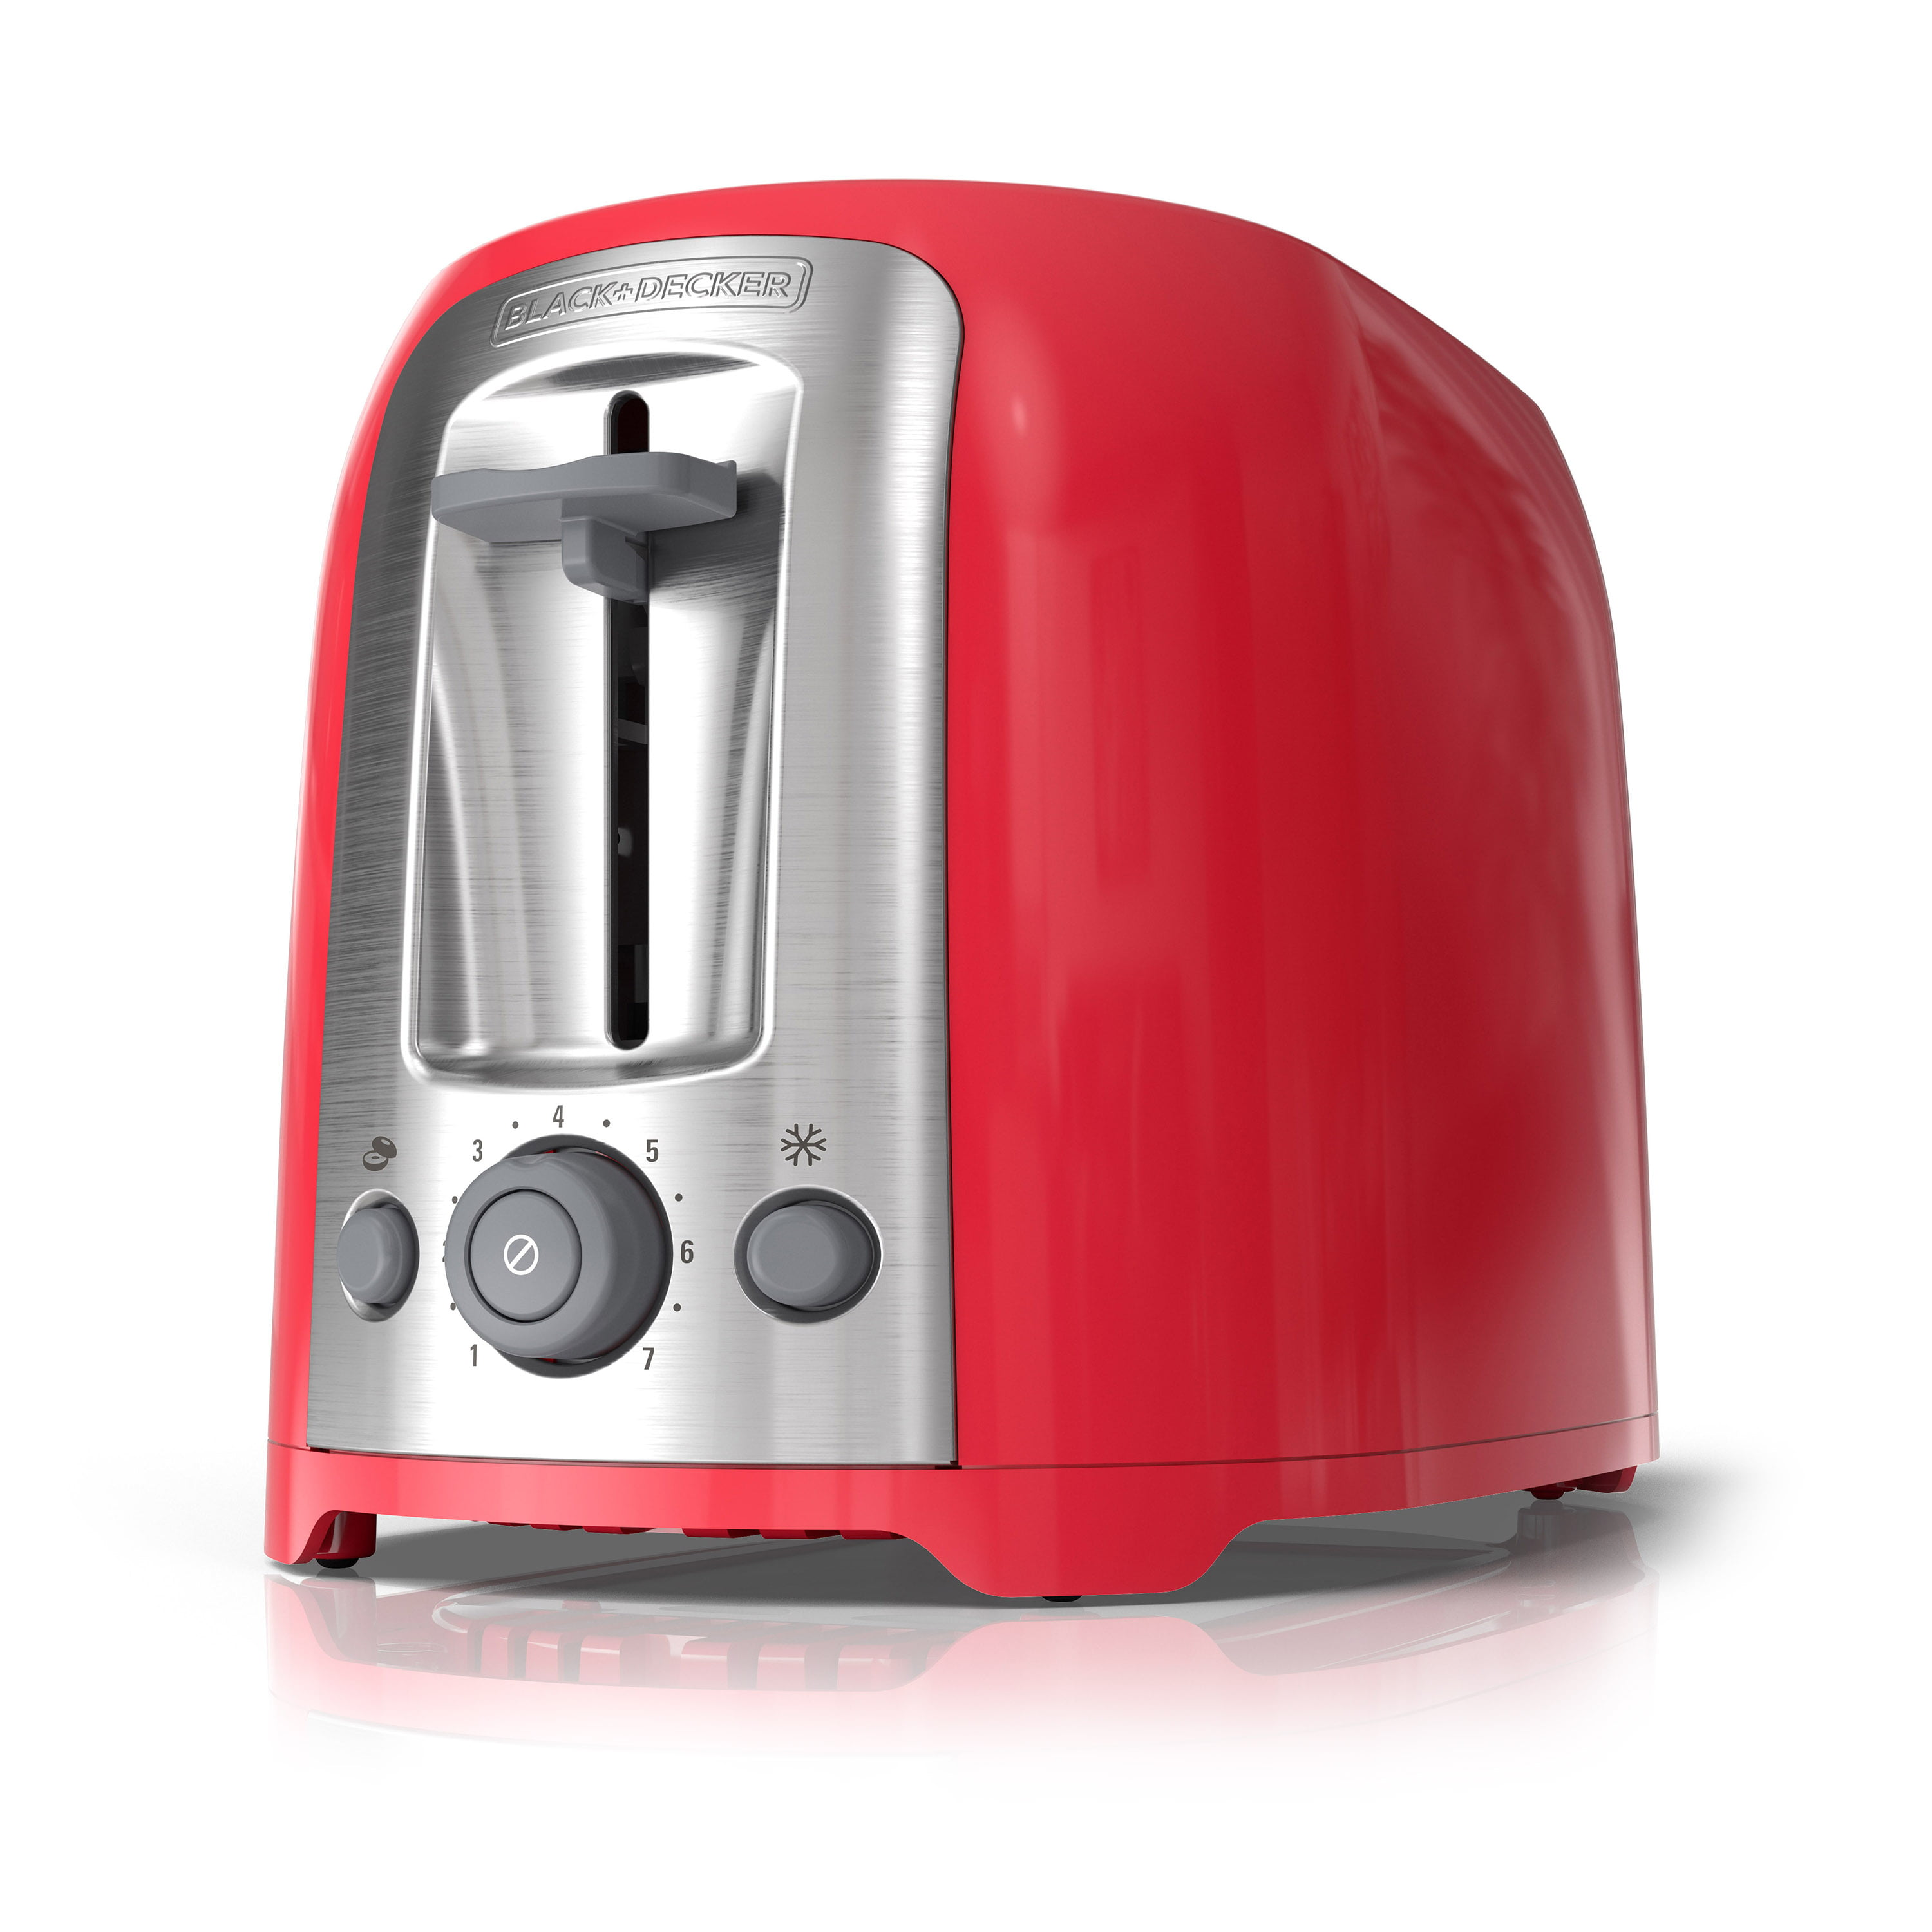 Black & Decker 2-Slice Extra Wide Slot Toaster, Red Silver, TR1278TRM by BLACK DECKER